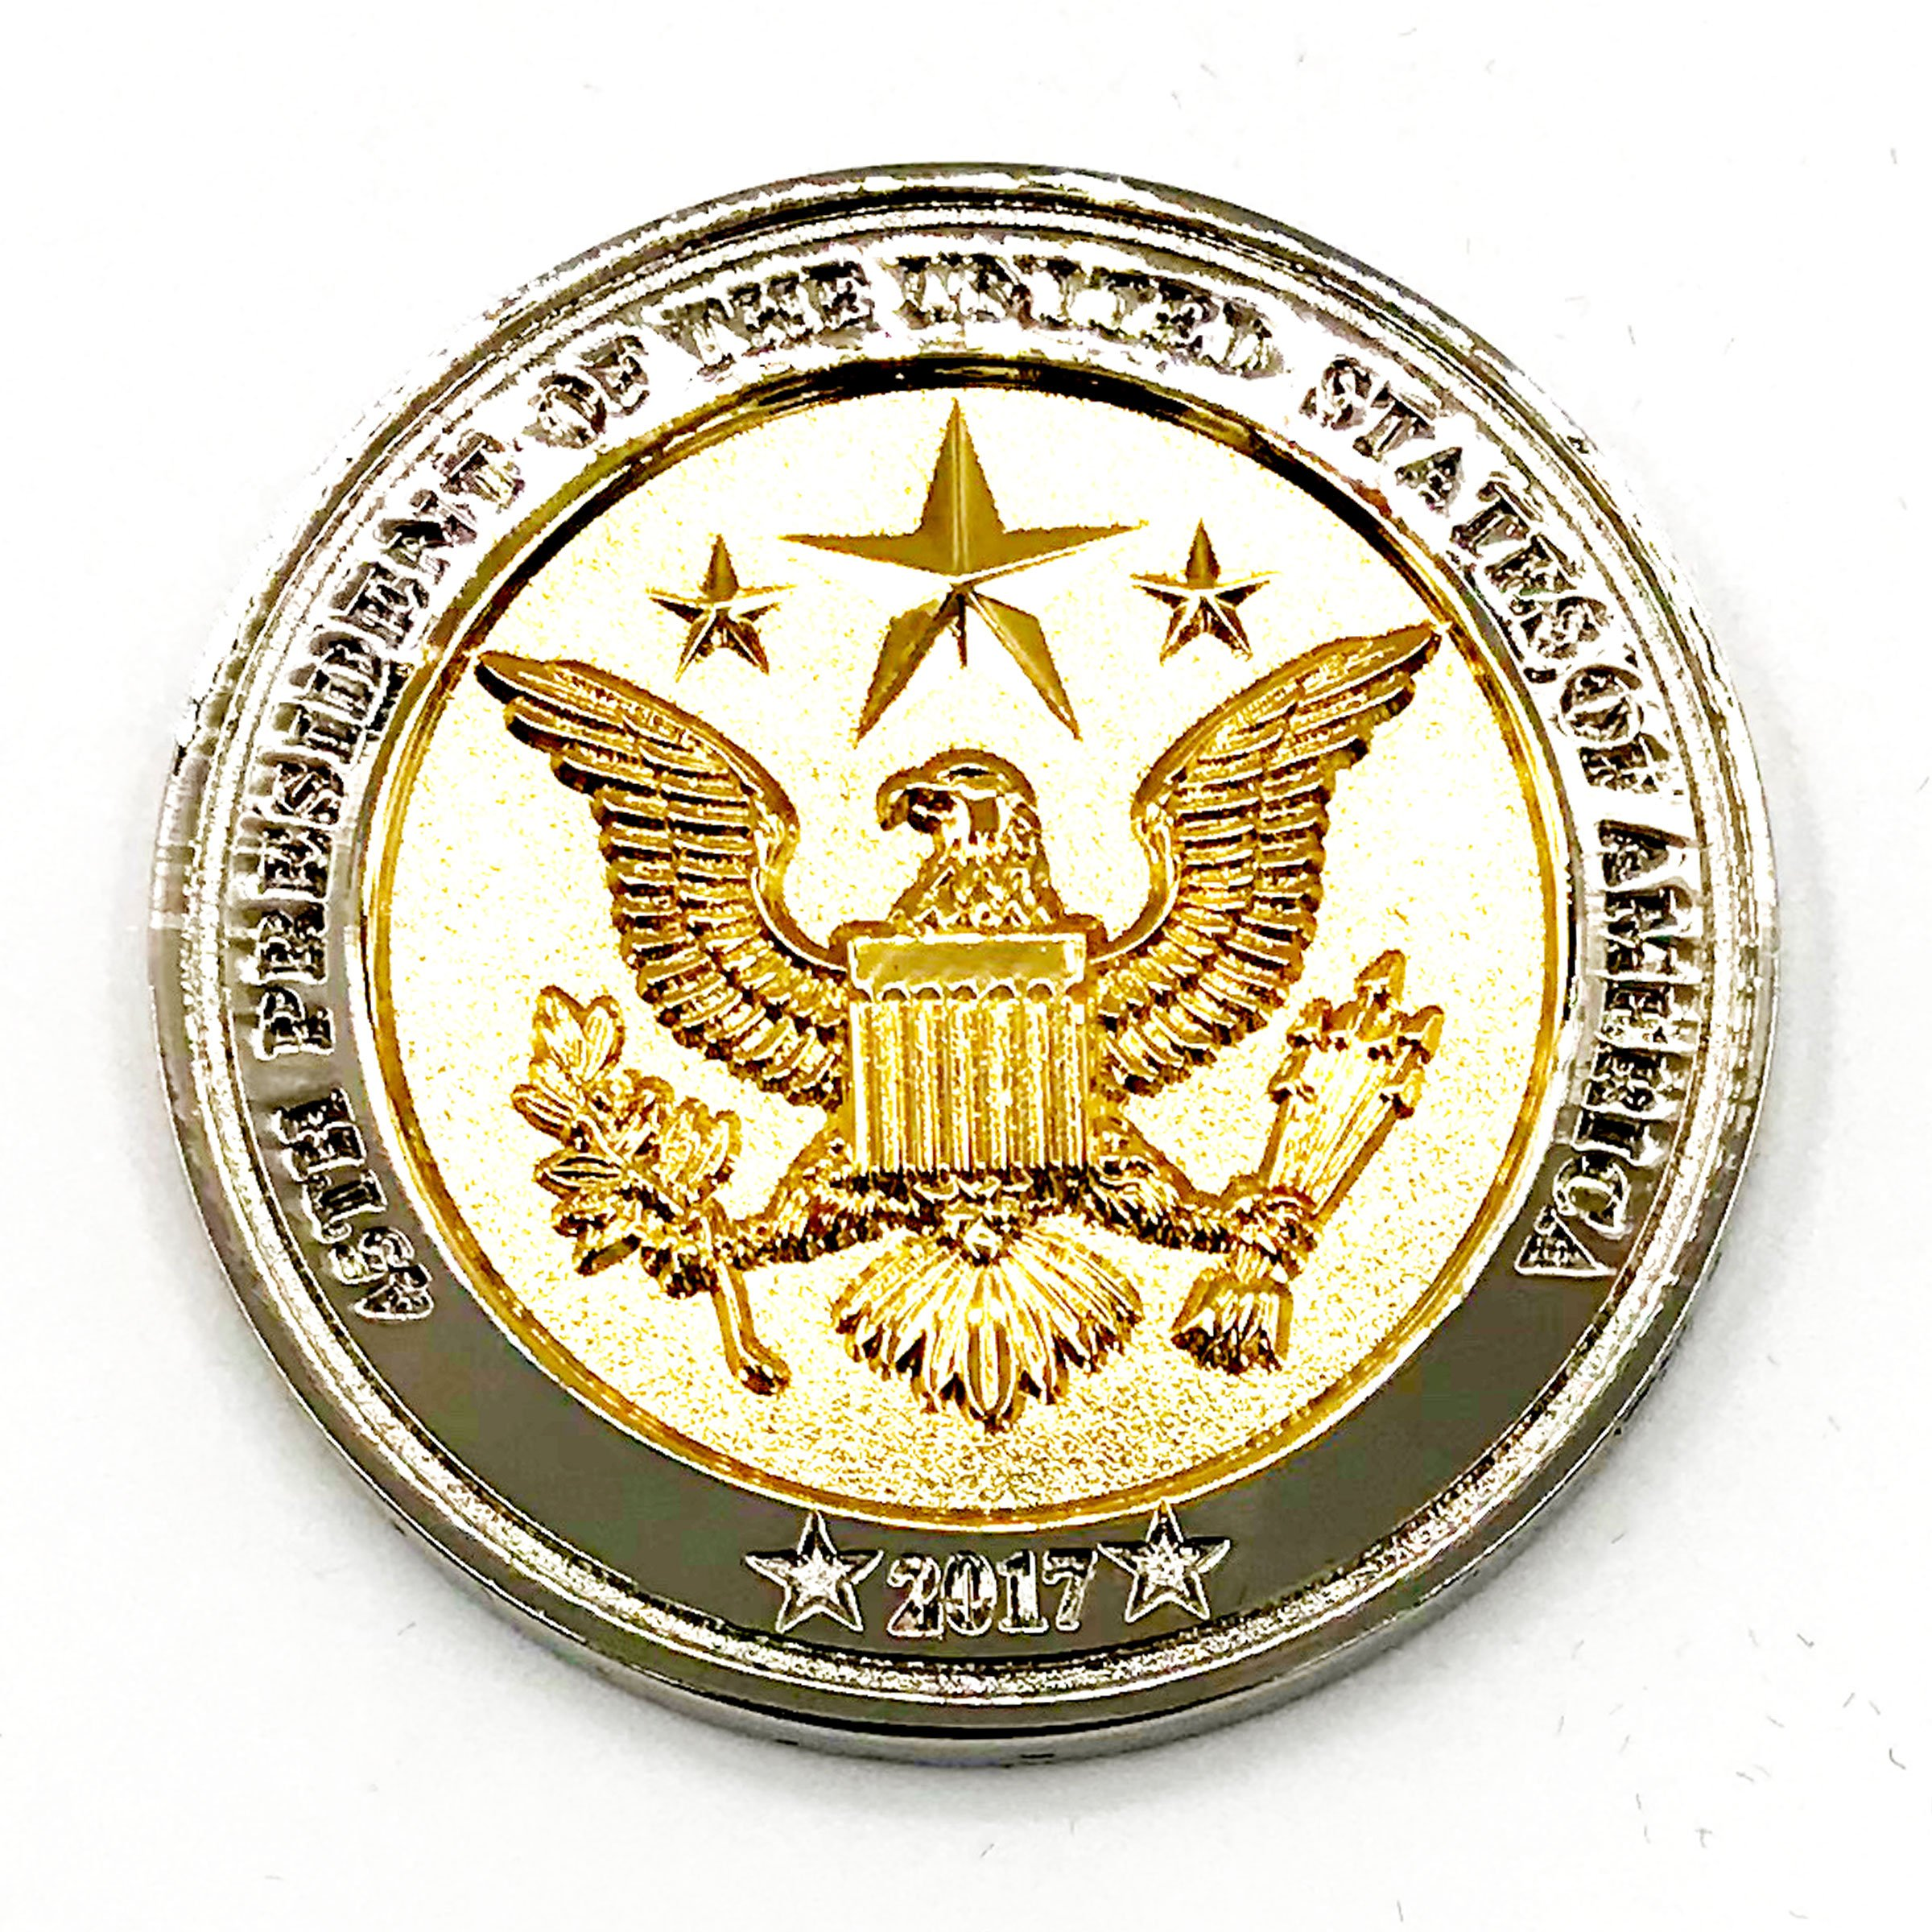 Trump Coin, 58th Presidential Inauguration of Donald J. Trump Challenge Coin by AIIZ Collectibles, 1.75'' Diameter in Shinny 24K Gold & 925 Silver Plating, packaged in Black Velvet Case by AIIZ Collectibles (Image #5)